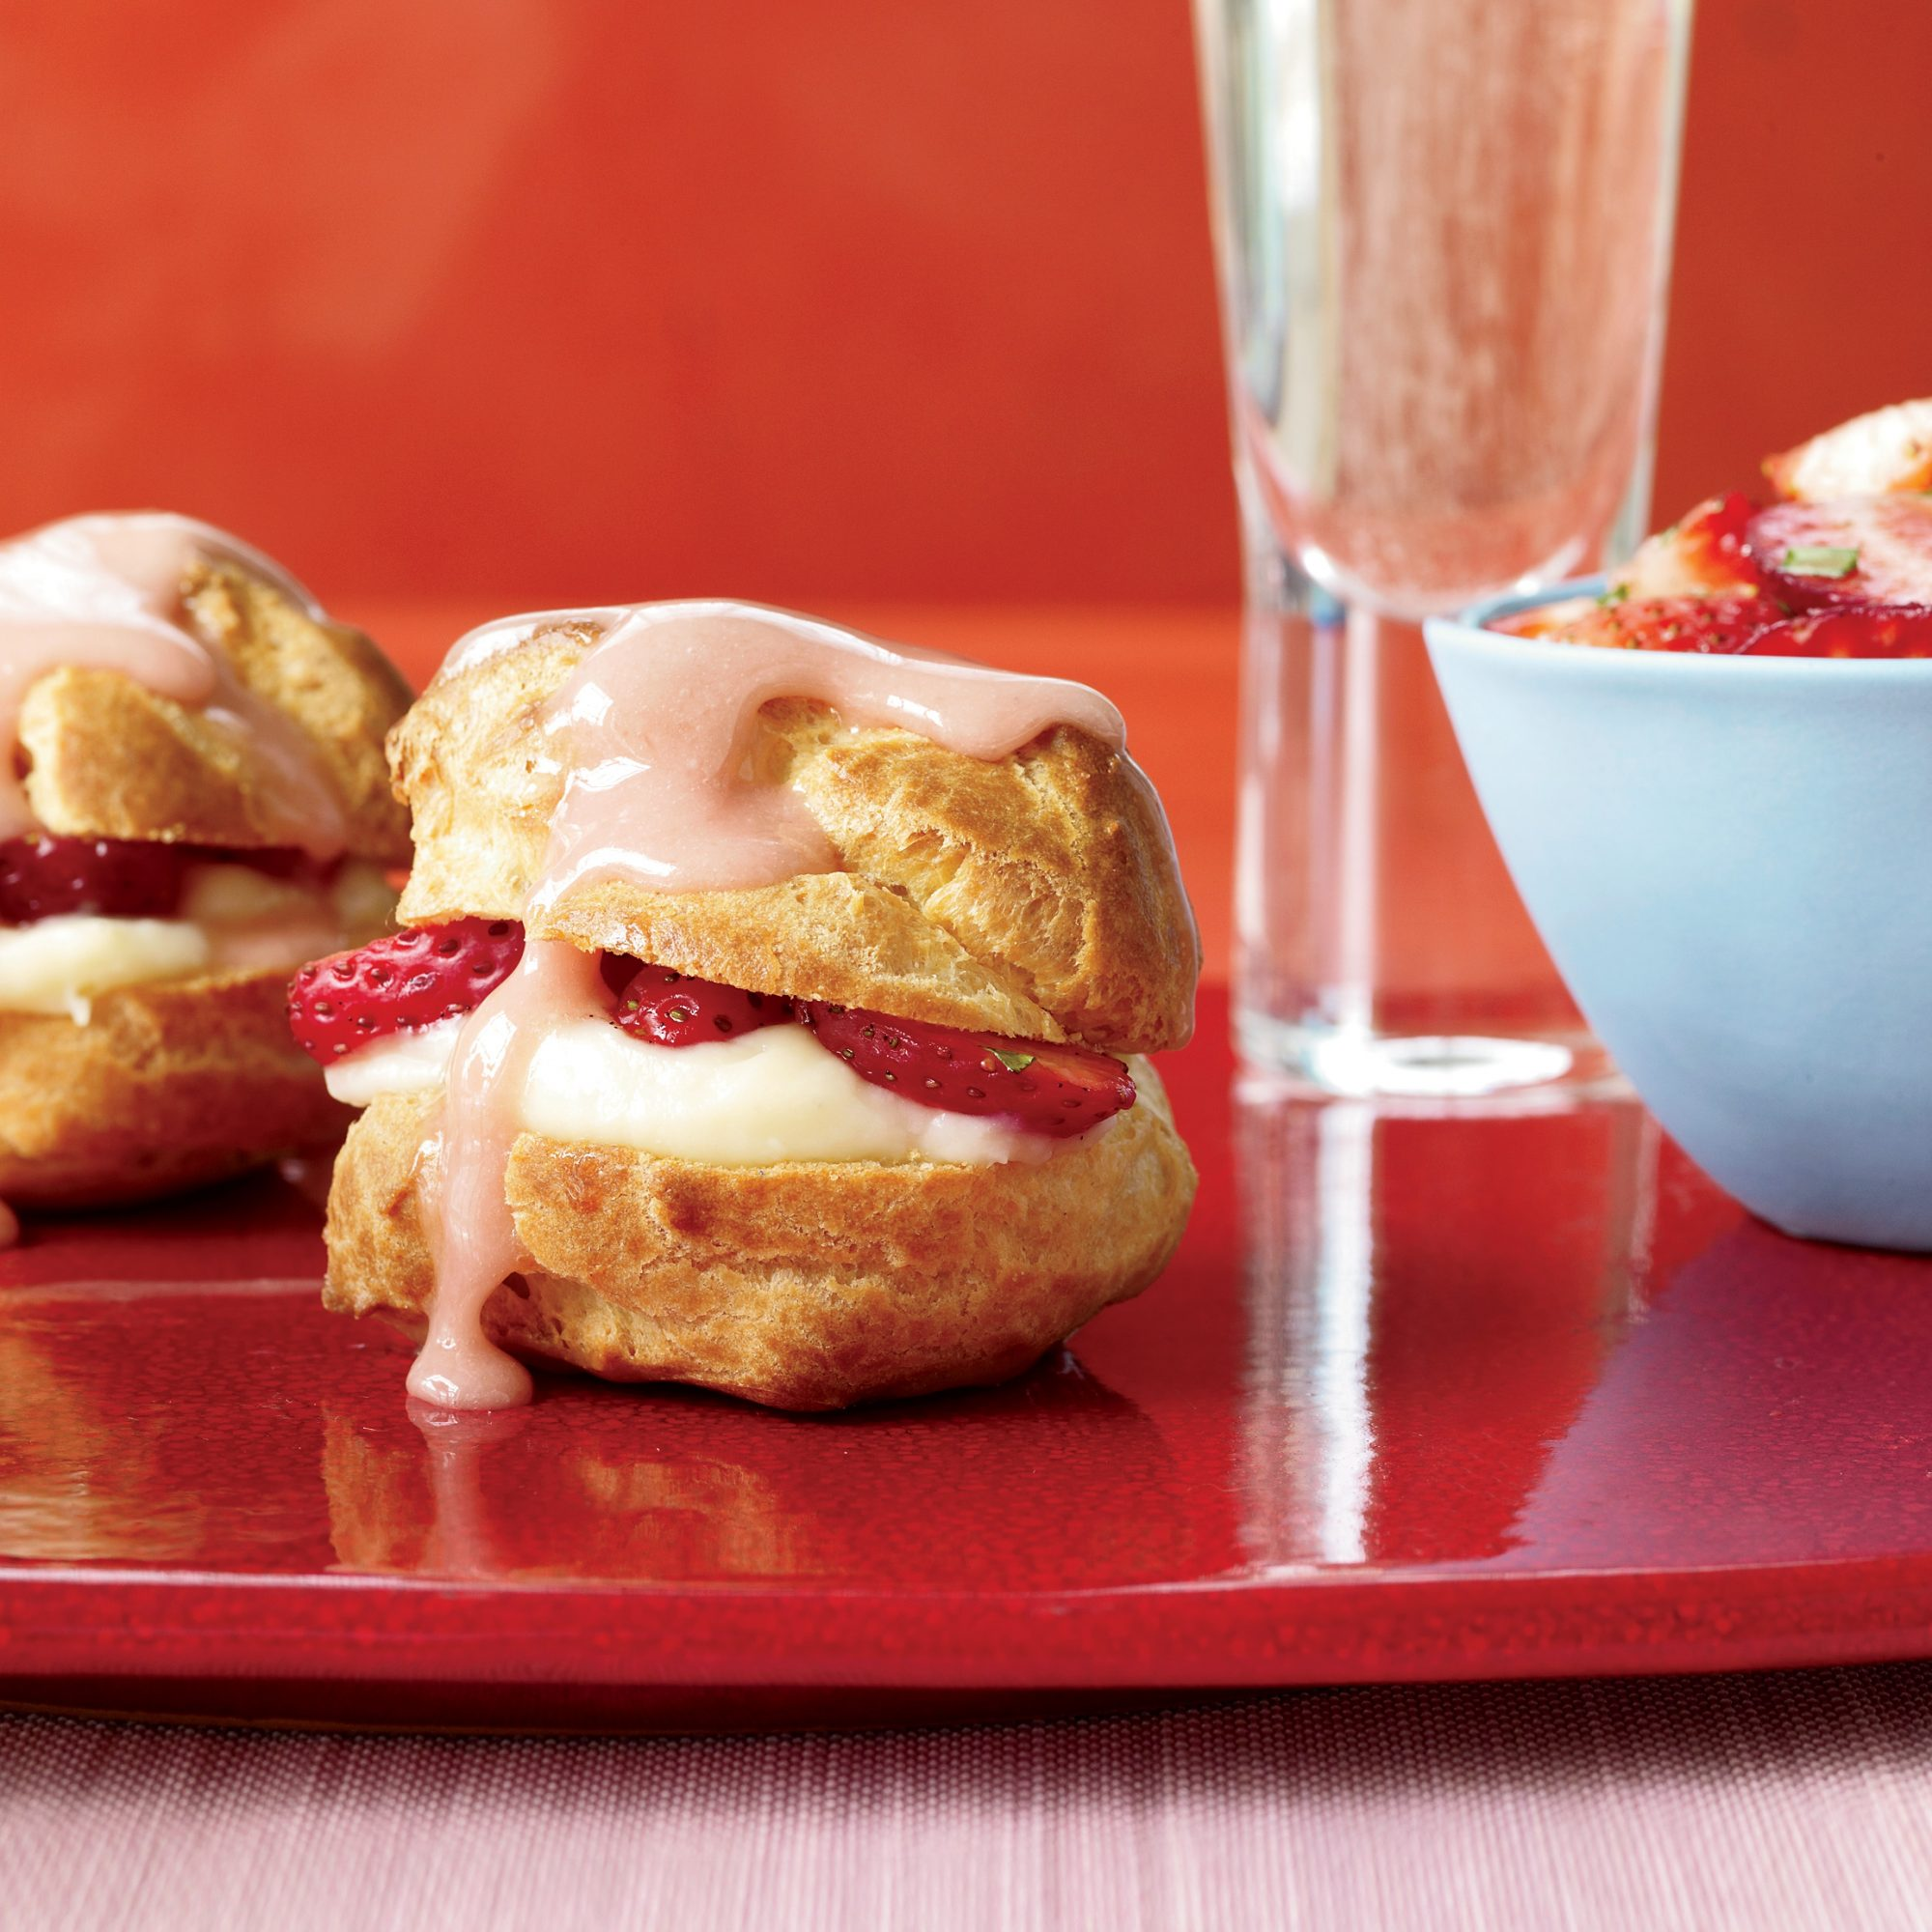 201007-r-strawberry-cream-puff.jpg